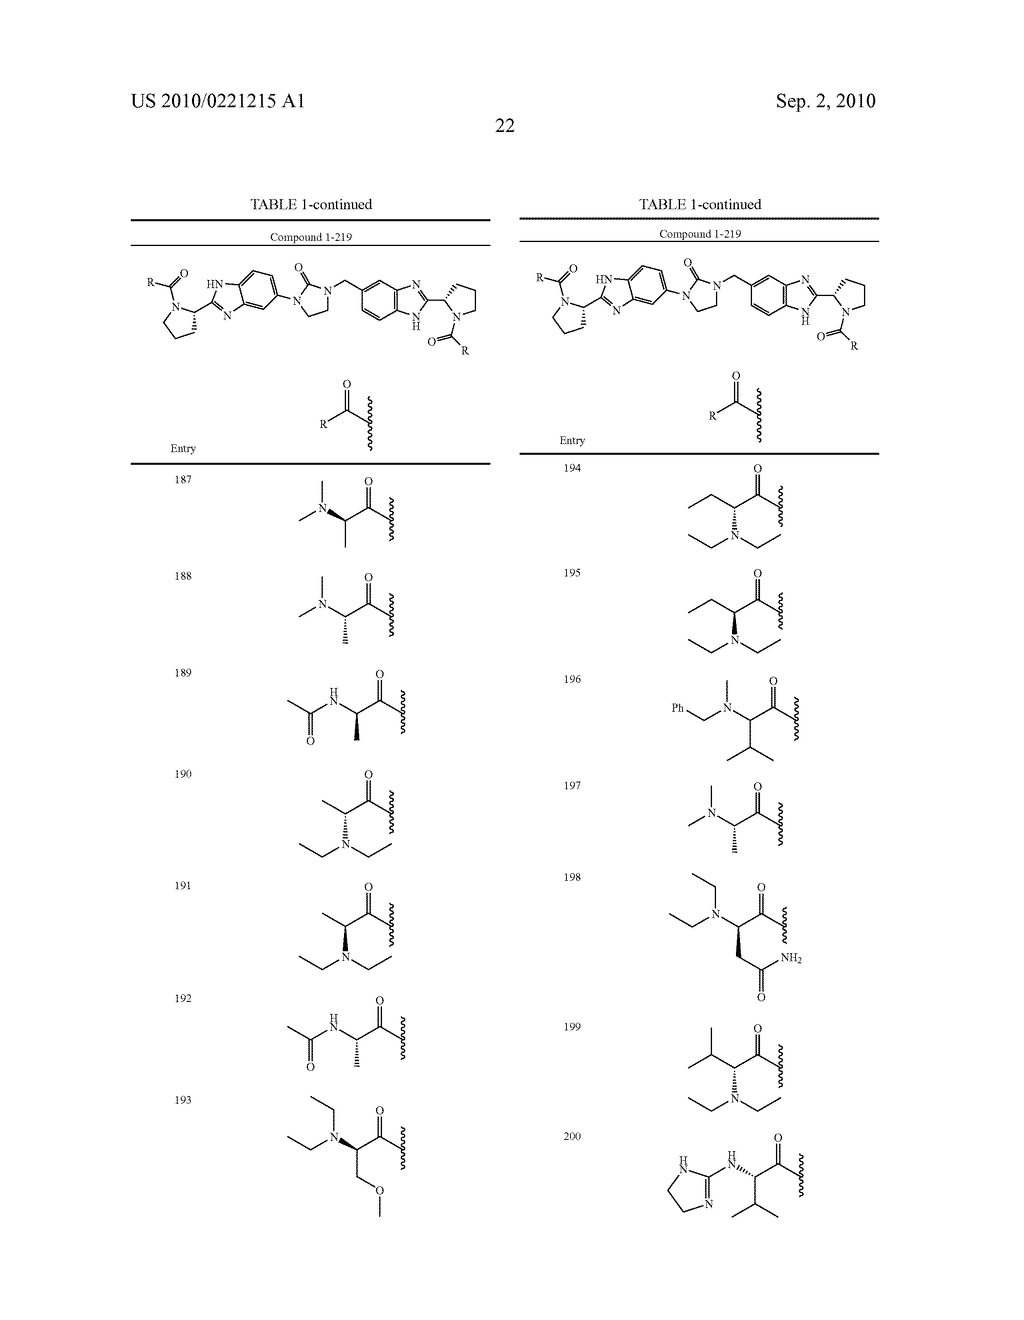 LINKED DIBENZIMIDAZOLE DERIVATIVES - diagram, schematic, and image 23